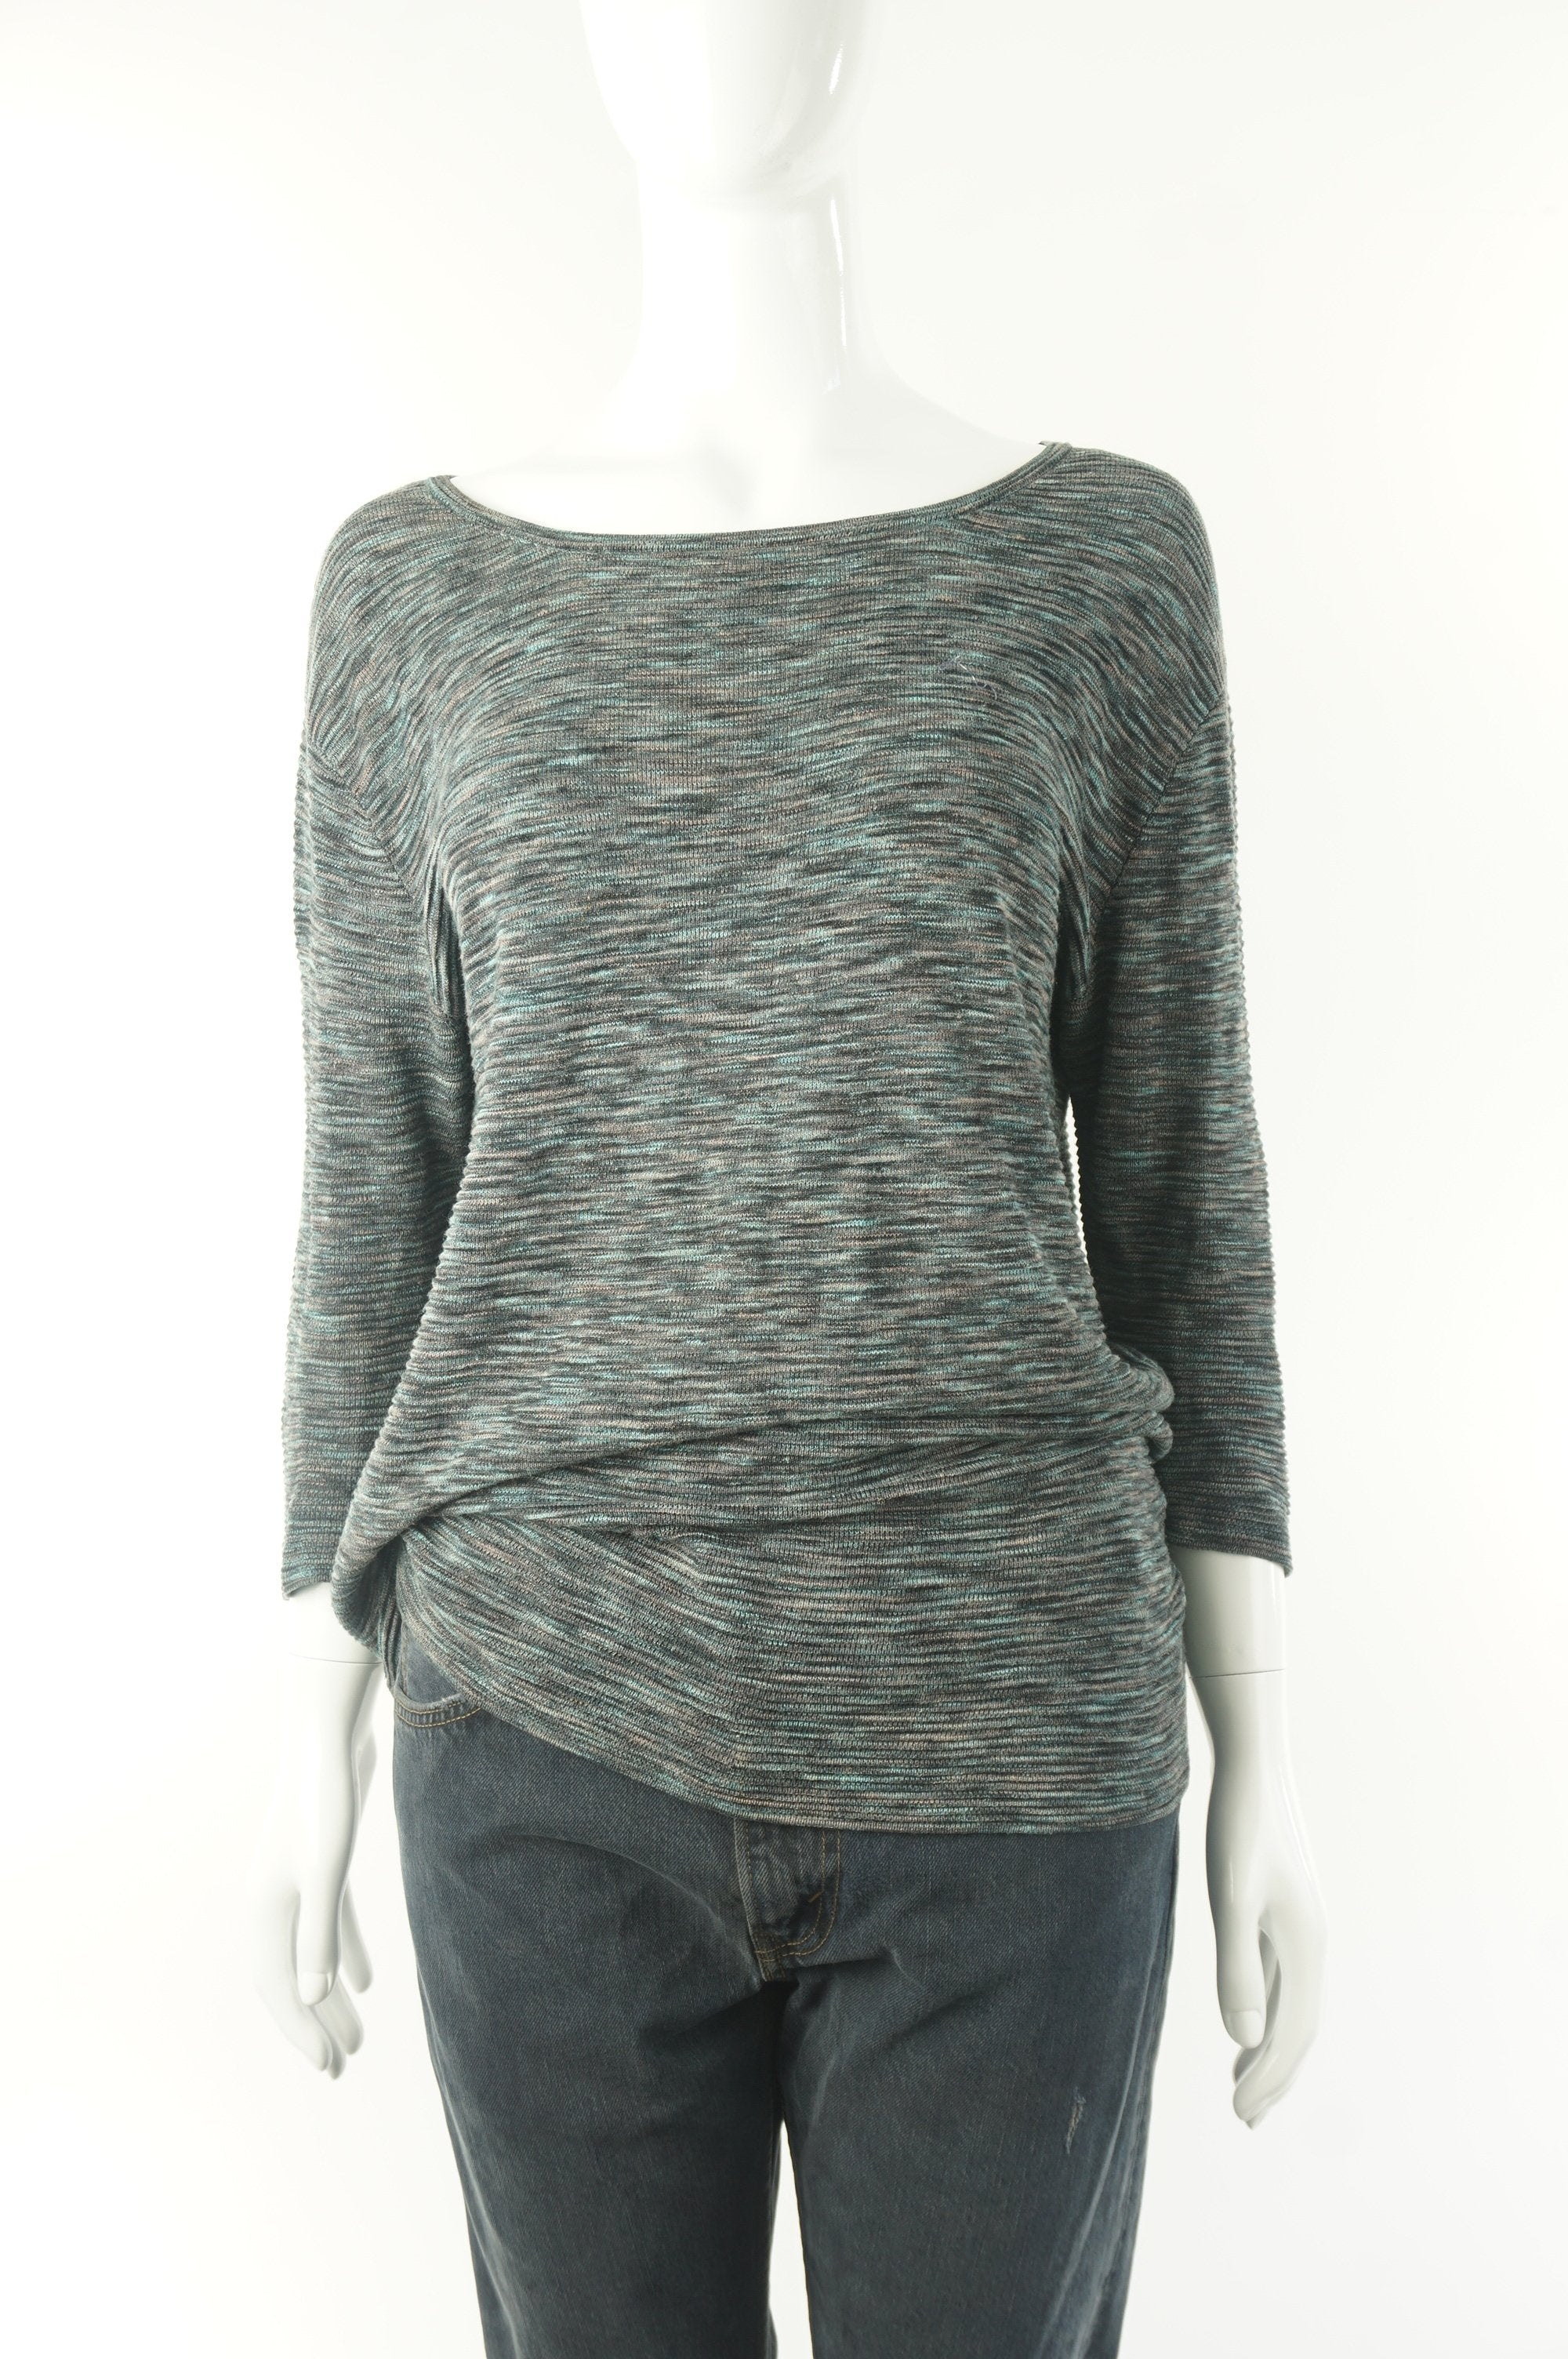 Wilfred Pullover Sweater, Relaxed fit with dropped shoulder. Perfect for everyday wear., Grey, Green, 68% viscose, 28% linen, 12% Nylon, women's Tops, women's Grey, Green Tops, Wilfred women's Tops, wilfred loose sweater, arizia women's loose fitting sweater, women's sweater, wilfred women's pullover